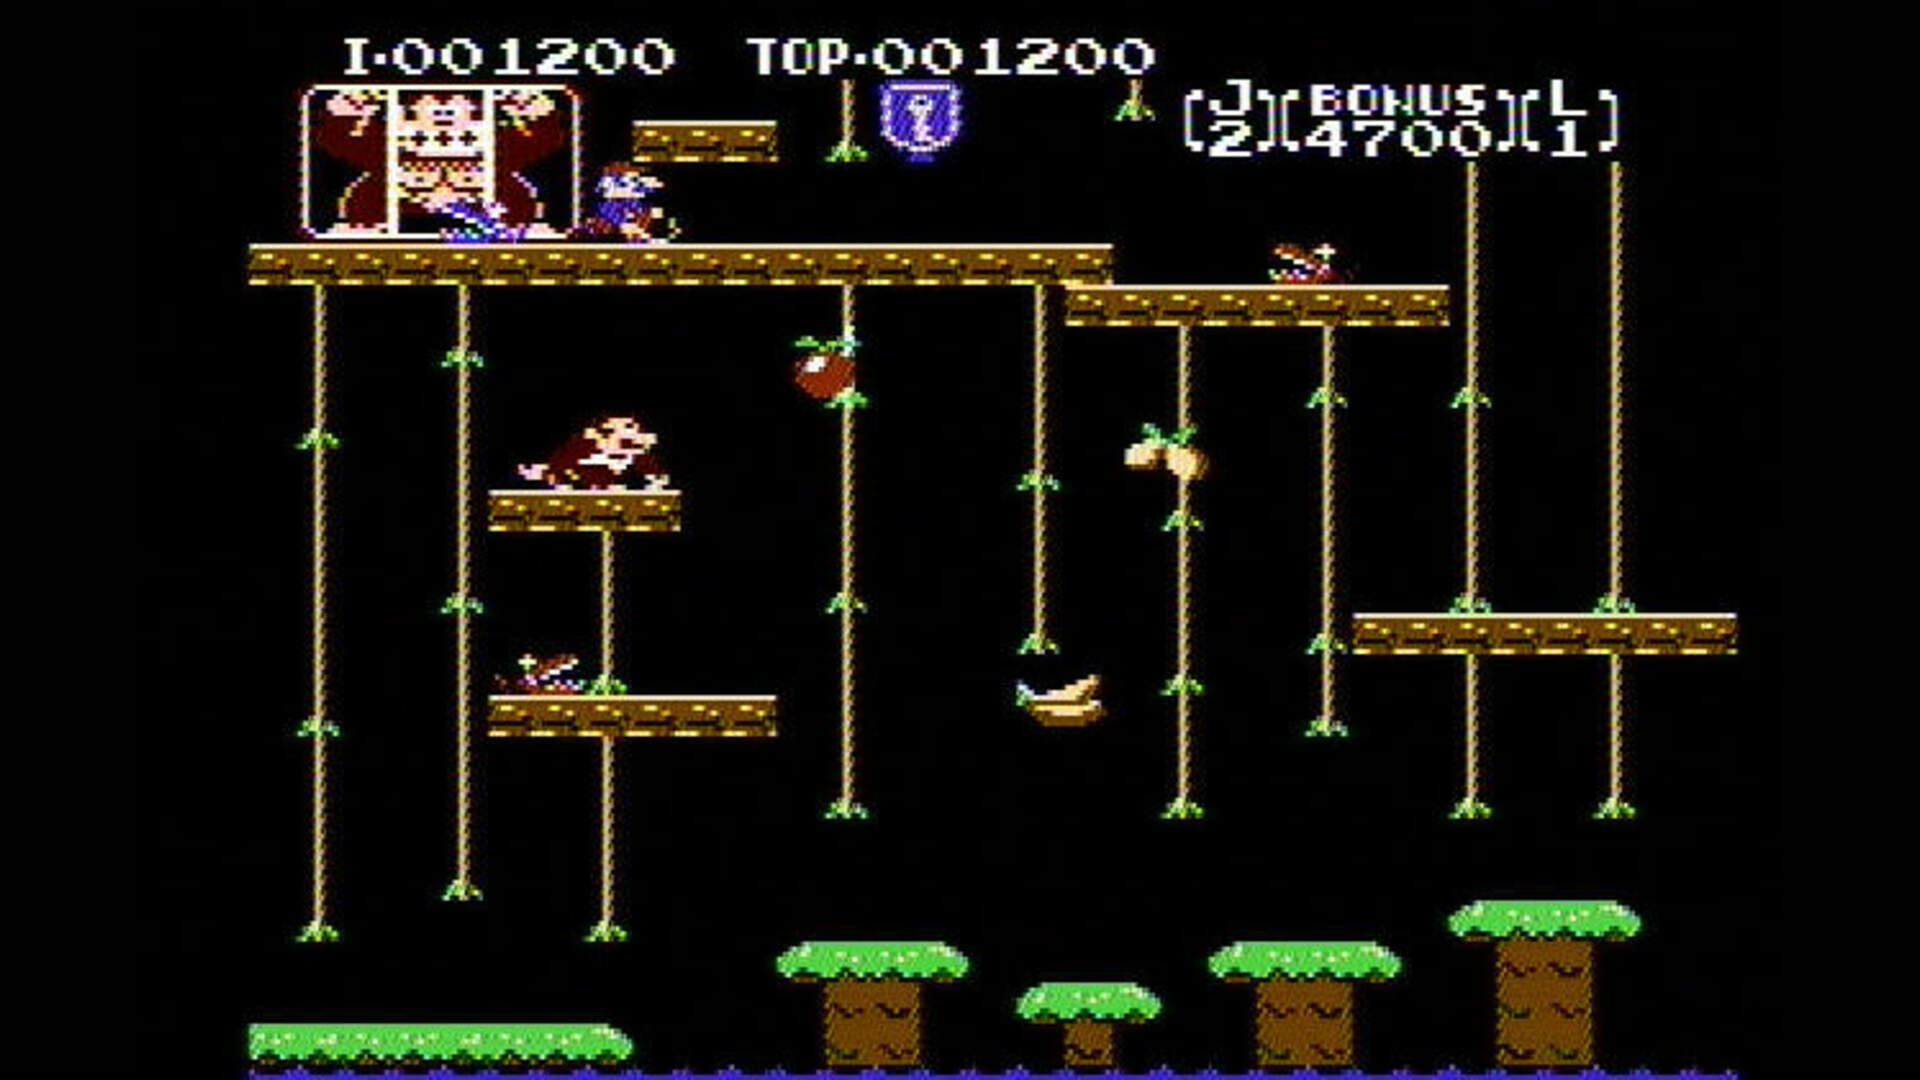 Donkey Kong, Donkey Kong Jr, and Mario Bros NES Classic Edition: Tips and Hints for High Scores